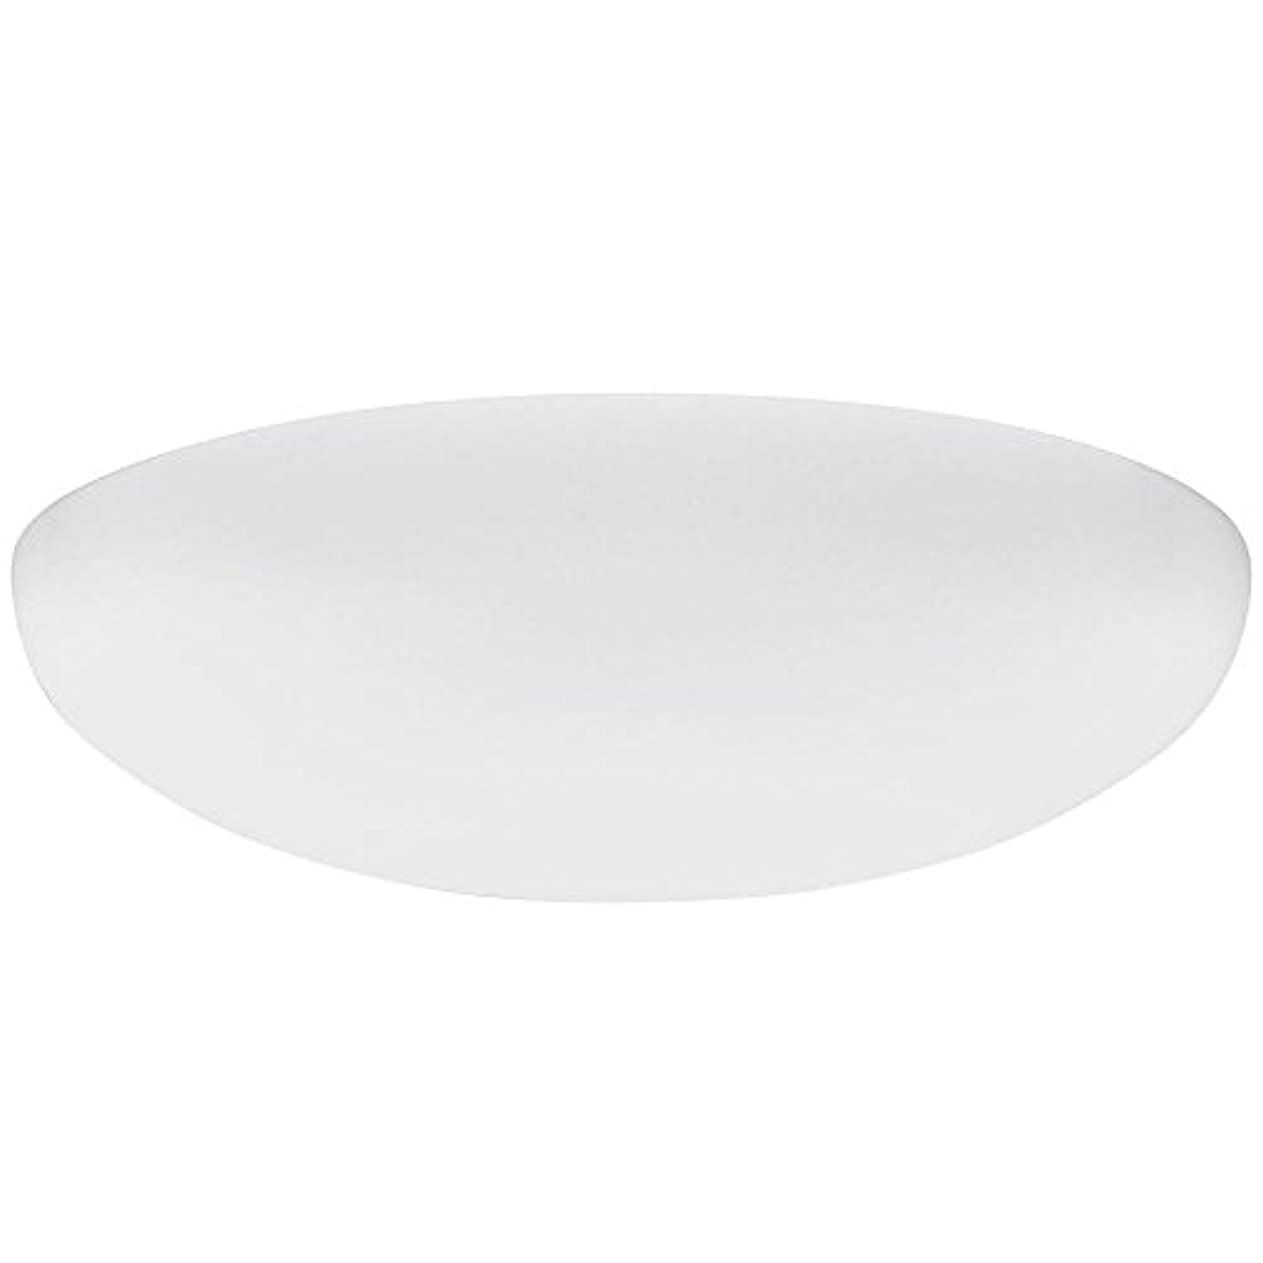 熟達した曖昧なキャンプLithonia Lighting DFMLRL14 M4 Replacement Diffuser, 14, White by Lithonia Lighting